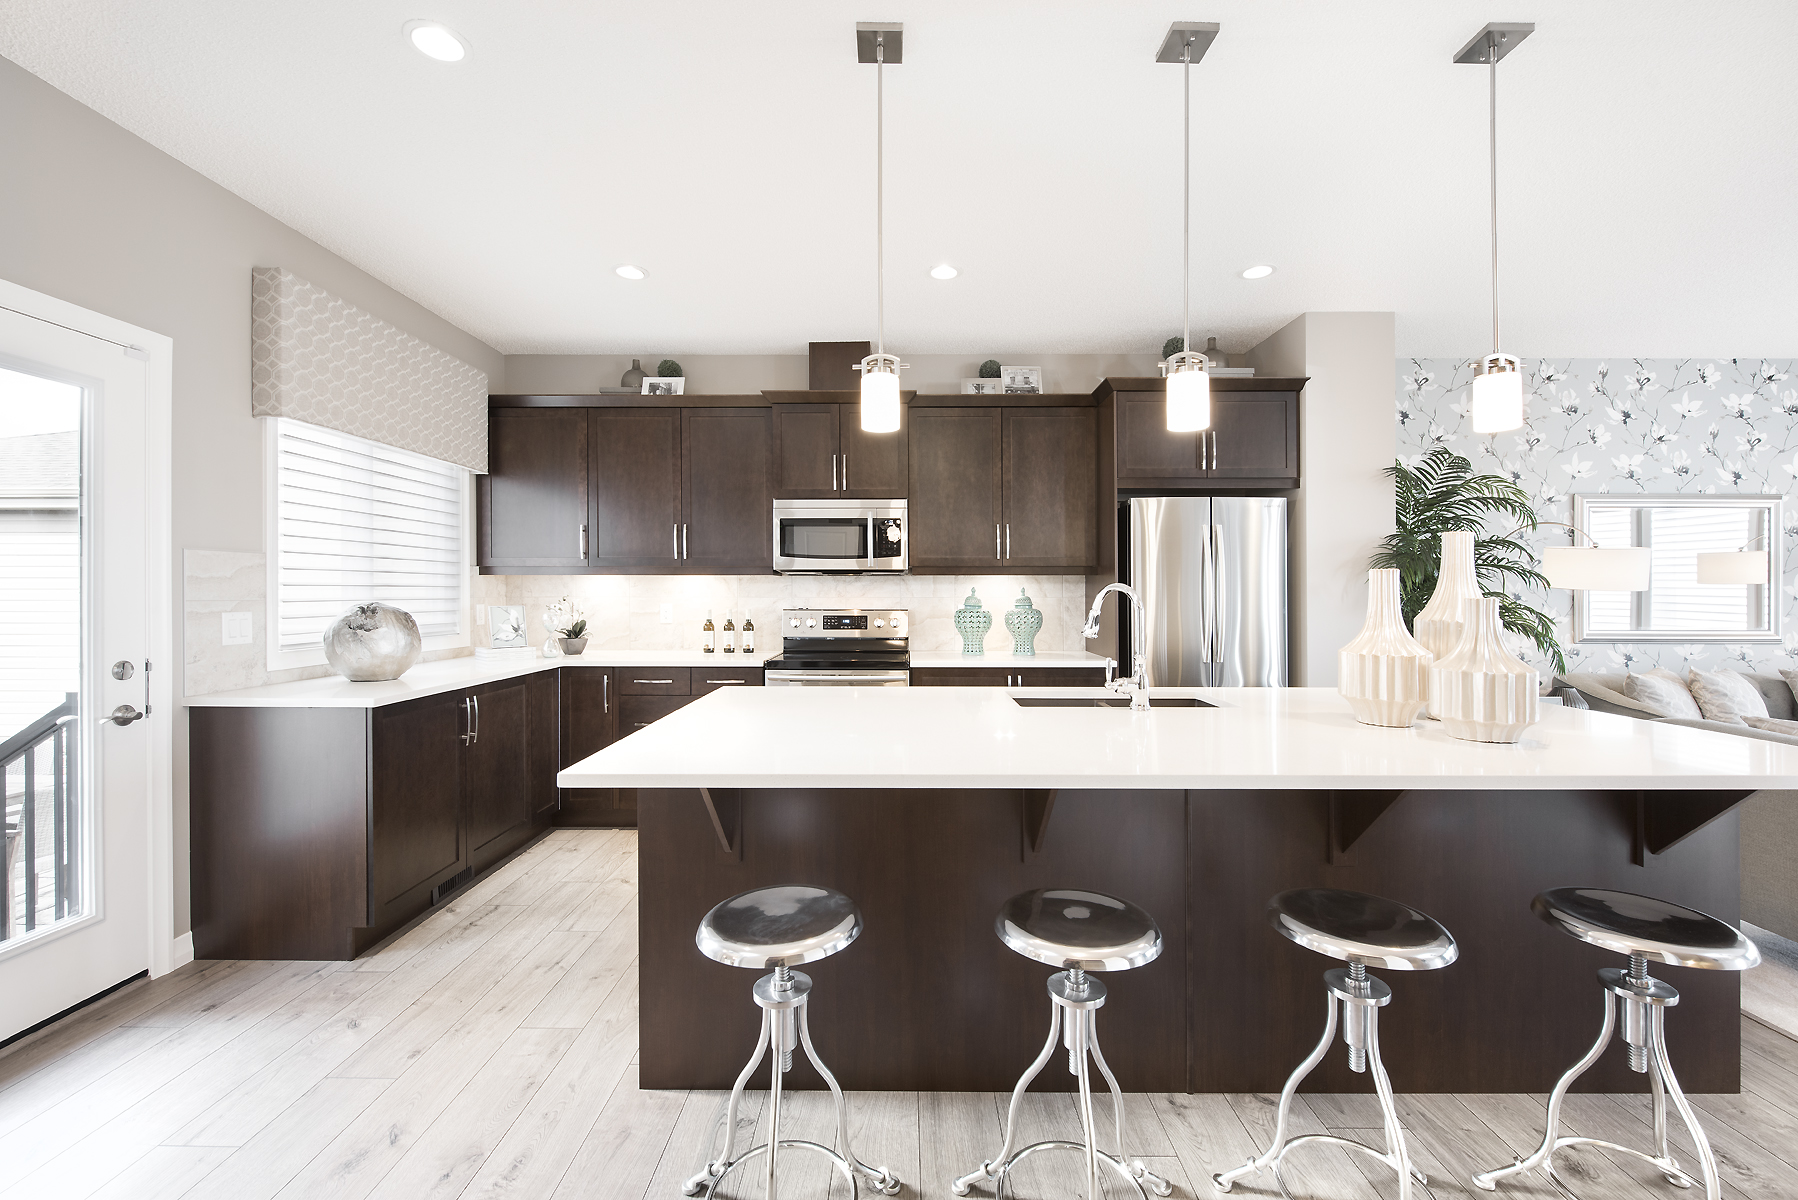 open concept kitchen with large island in the istoria model courtyard home by jayman built homes.